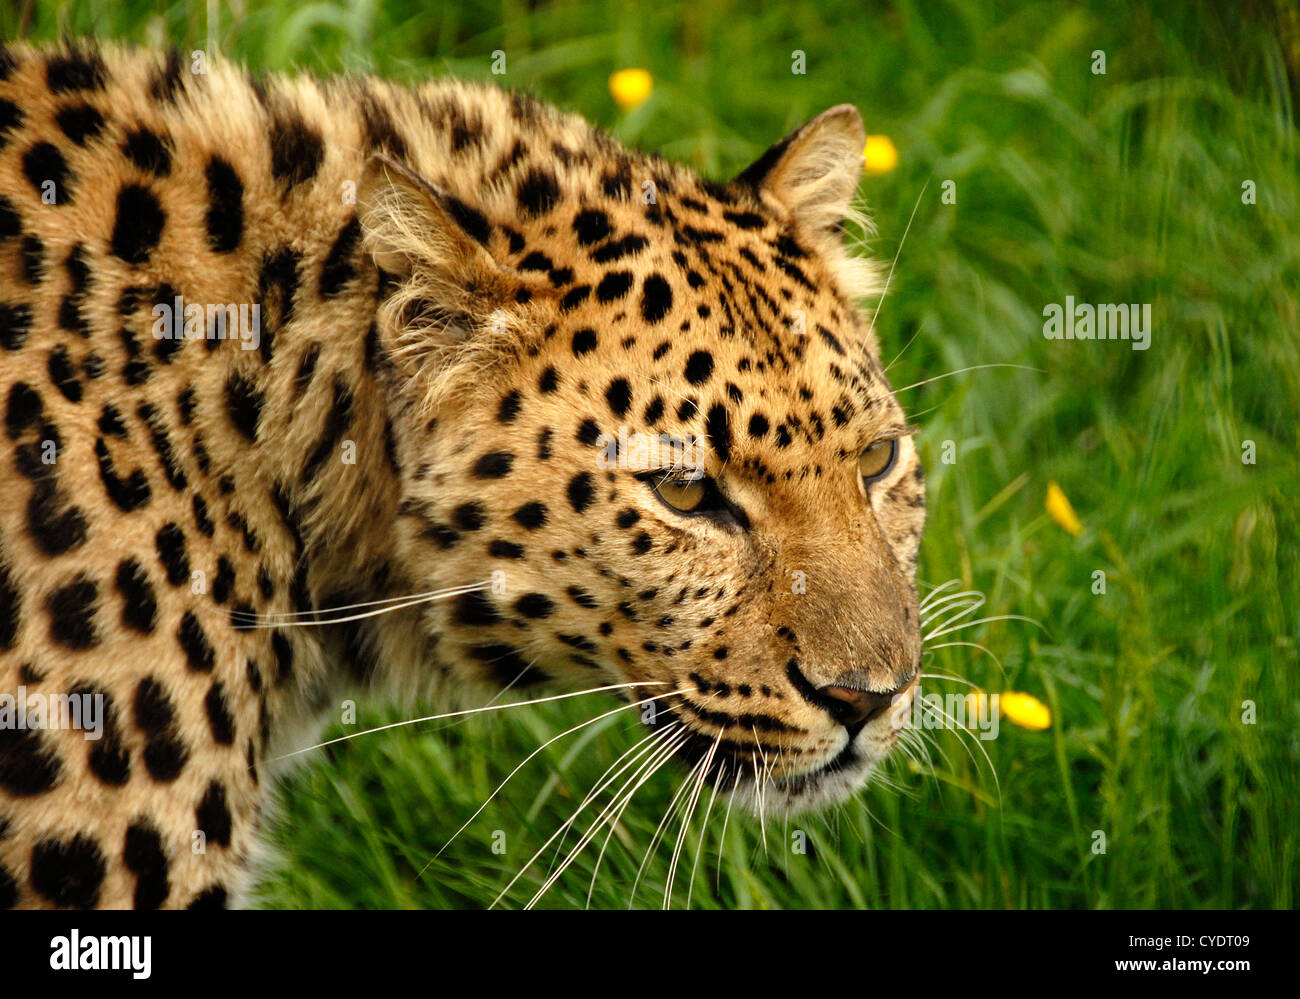 Close up Amur Leopard prowling - Stock Image